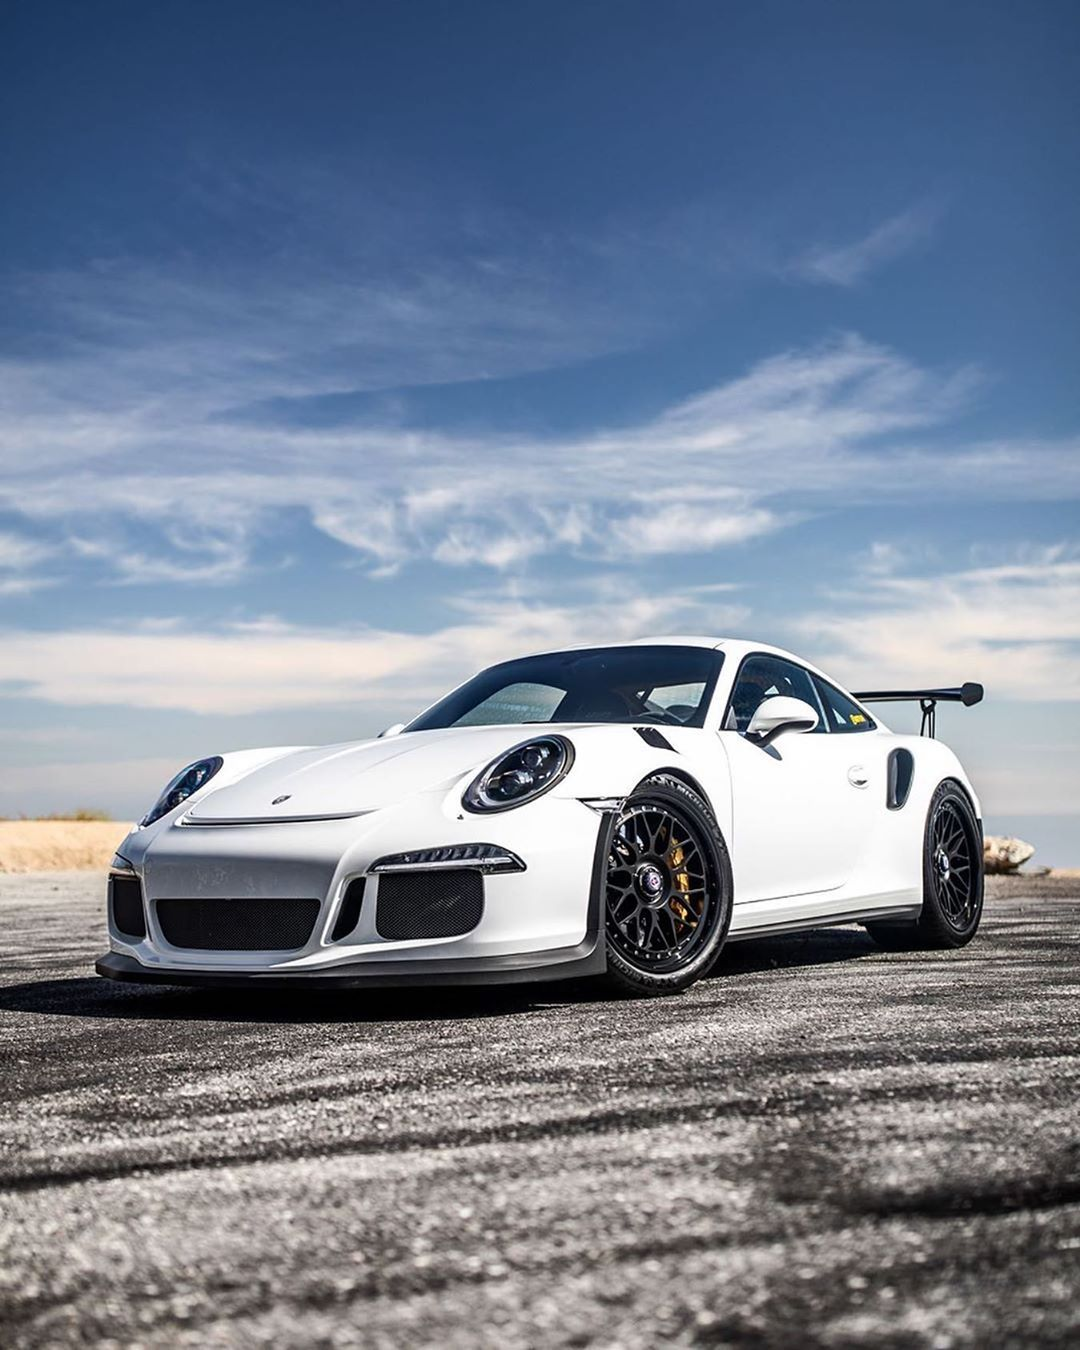 Pin By Shreyas Suresh On Cars In 2020 Porsche Cars Amazing Cars Sports Cars